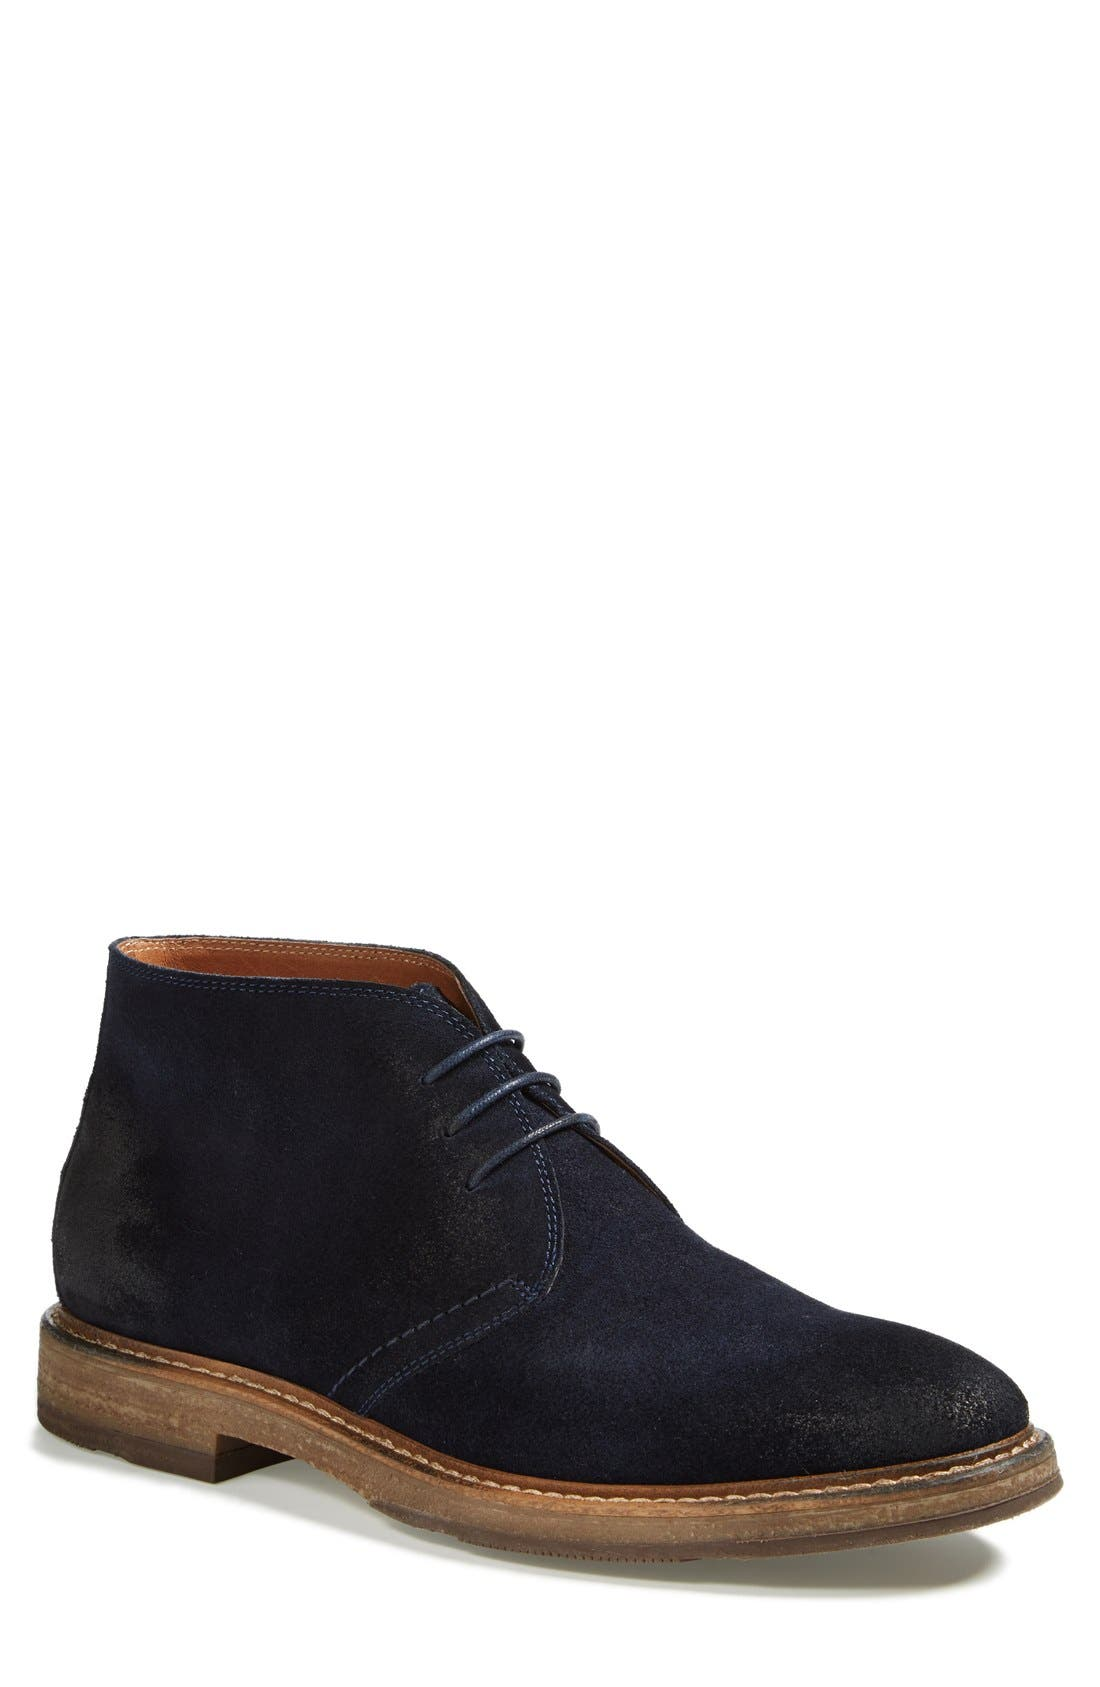 'Canyon' Chukka Boot,                             Main thumbnail 5, color,